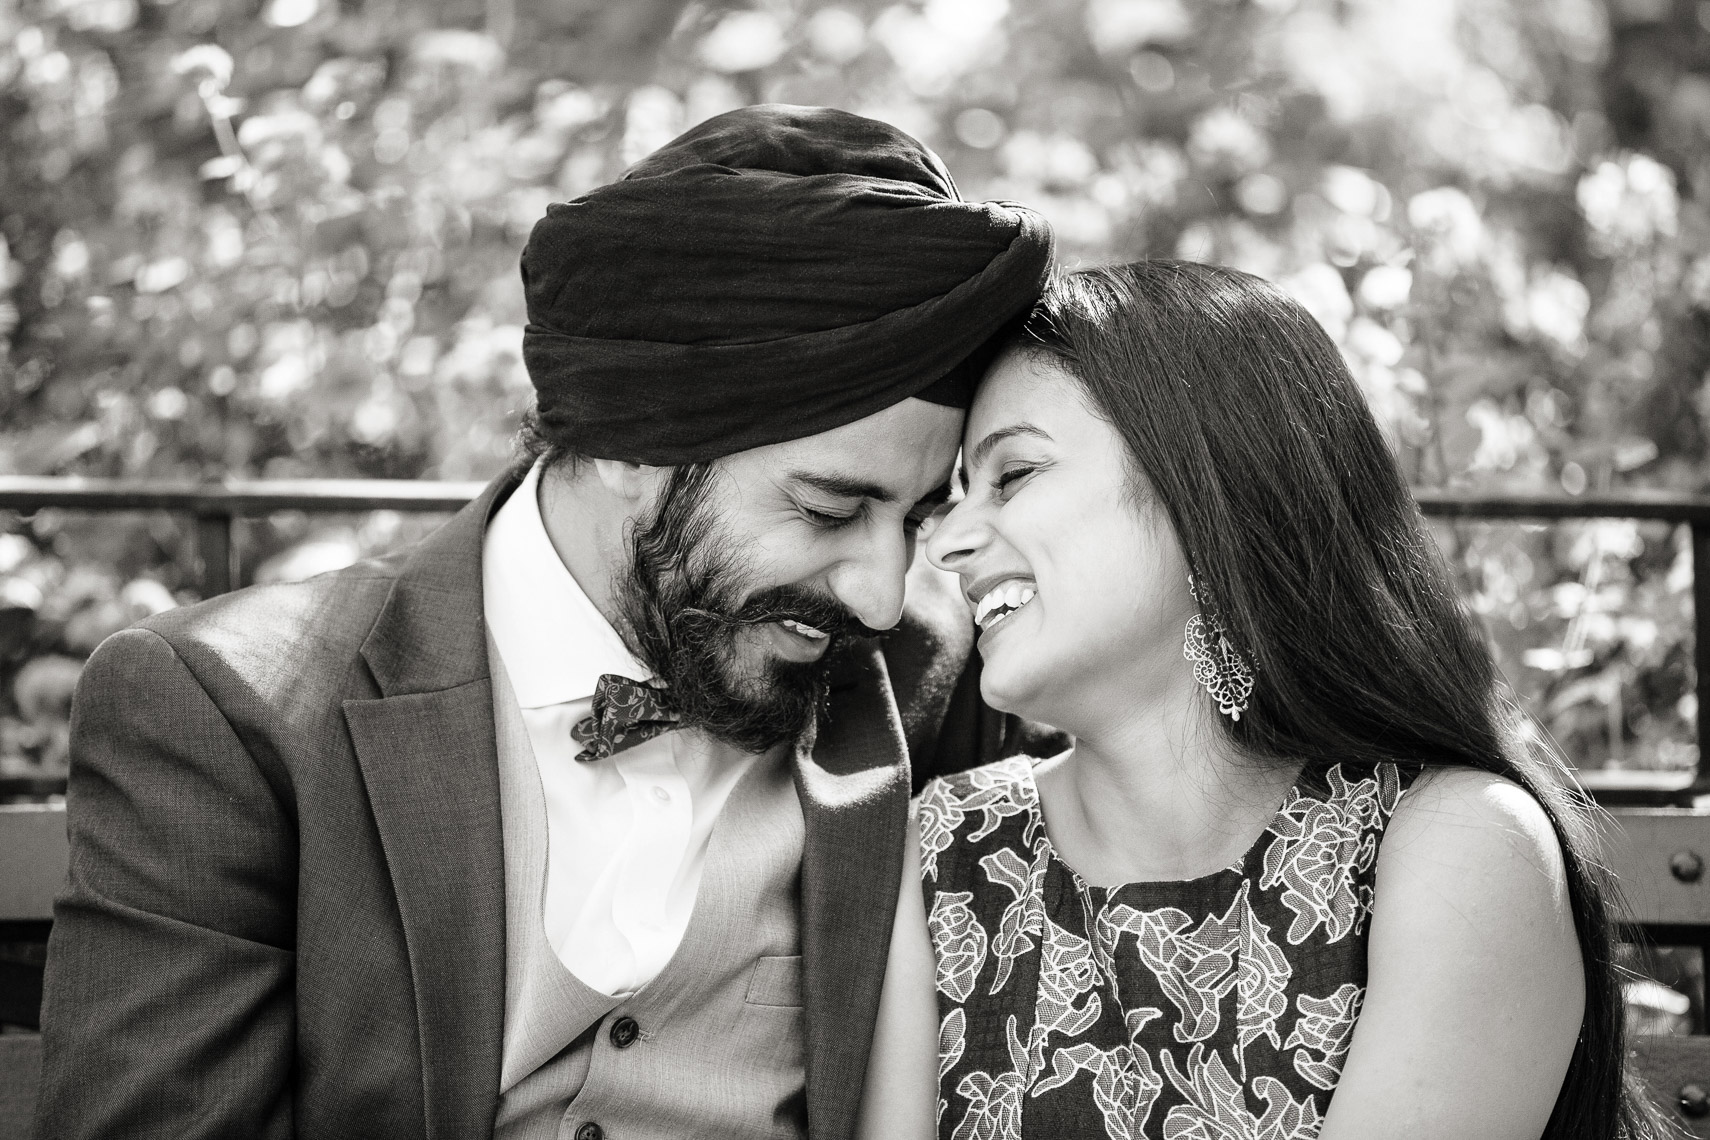 Kathi-Littwin-Photography-Engagement-Photos-4110